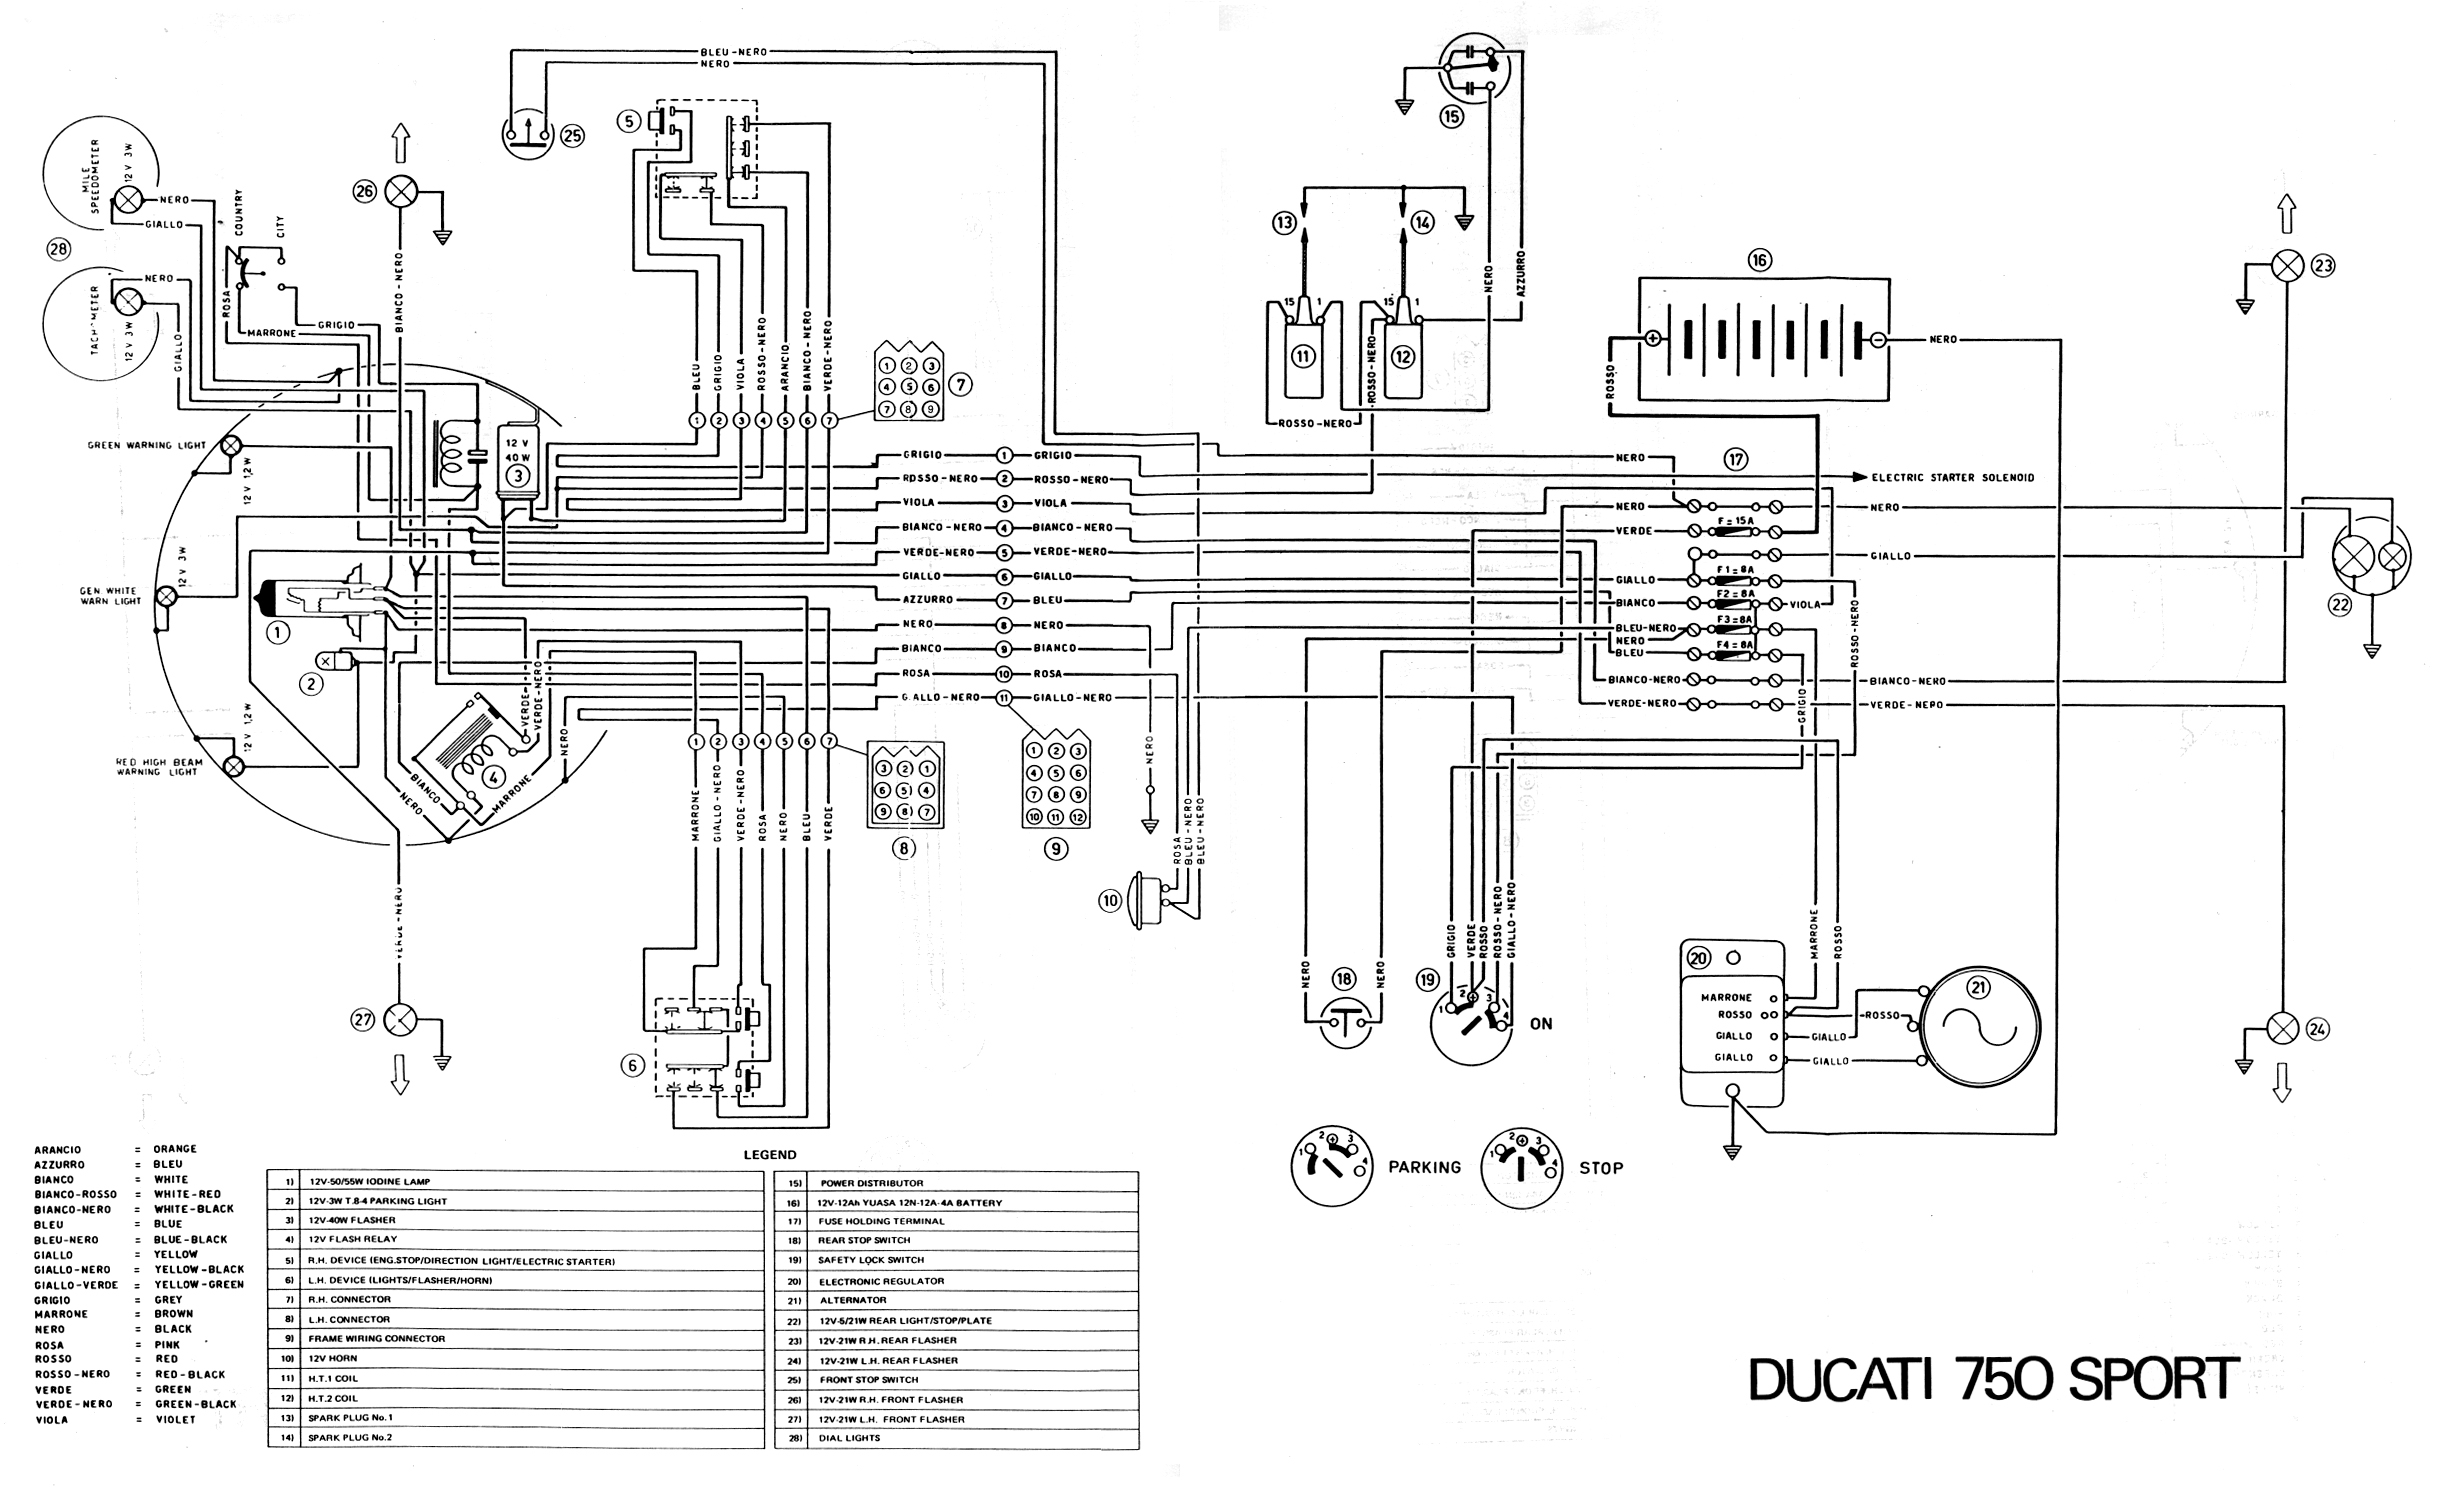 Ducati Engine Diagram Patent Us Internal Combustion Engine Patents Cw Tech Why Ducati Is